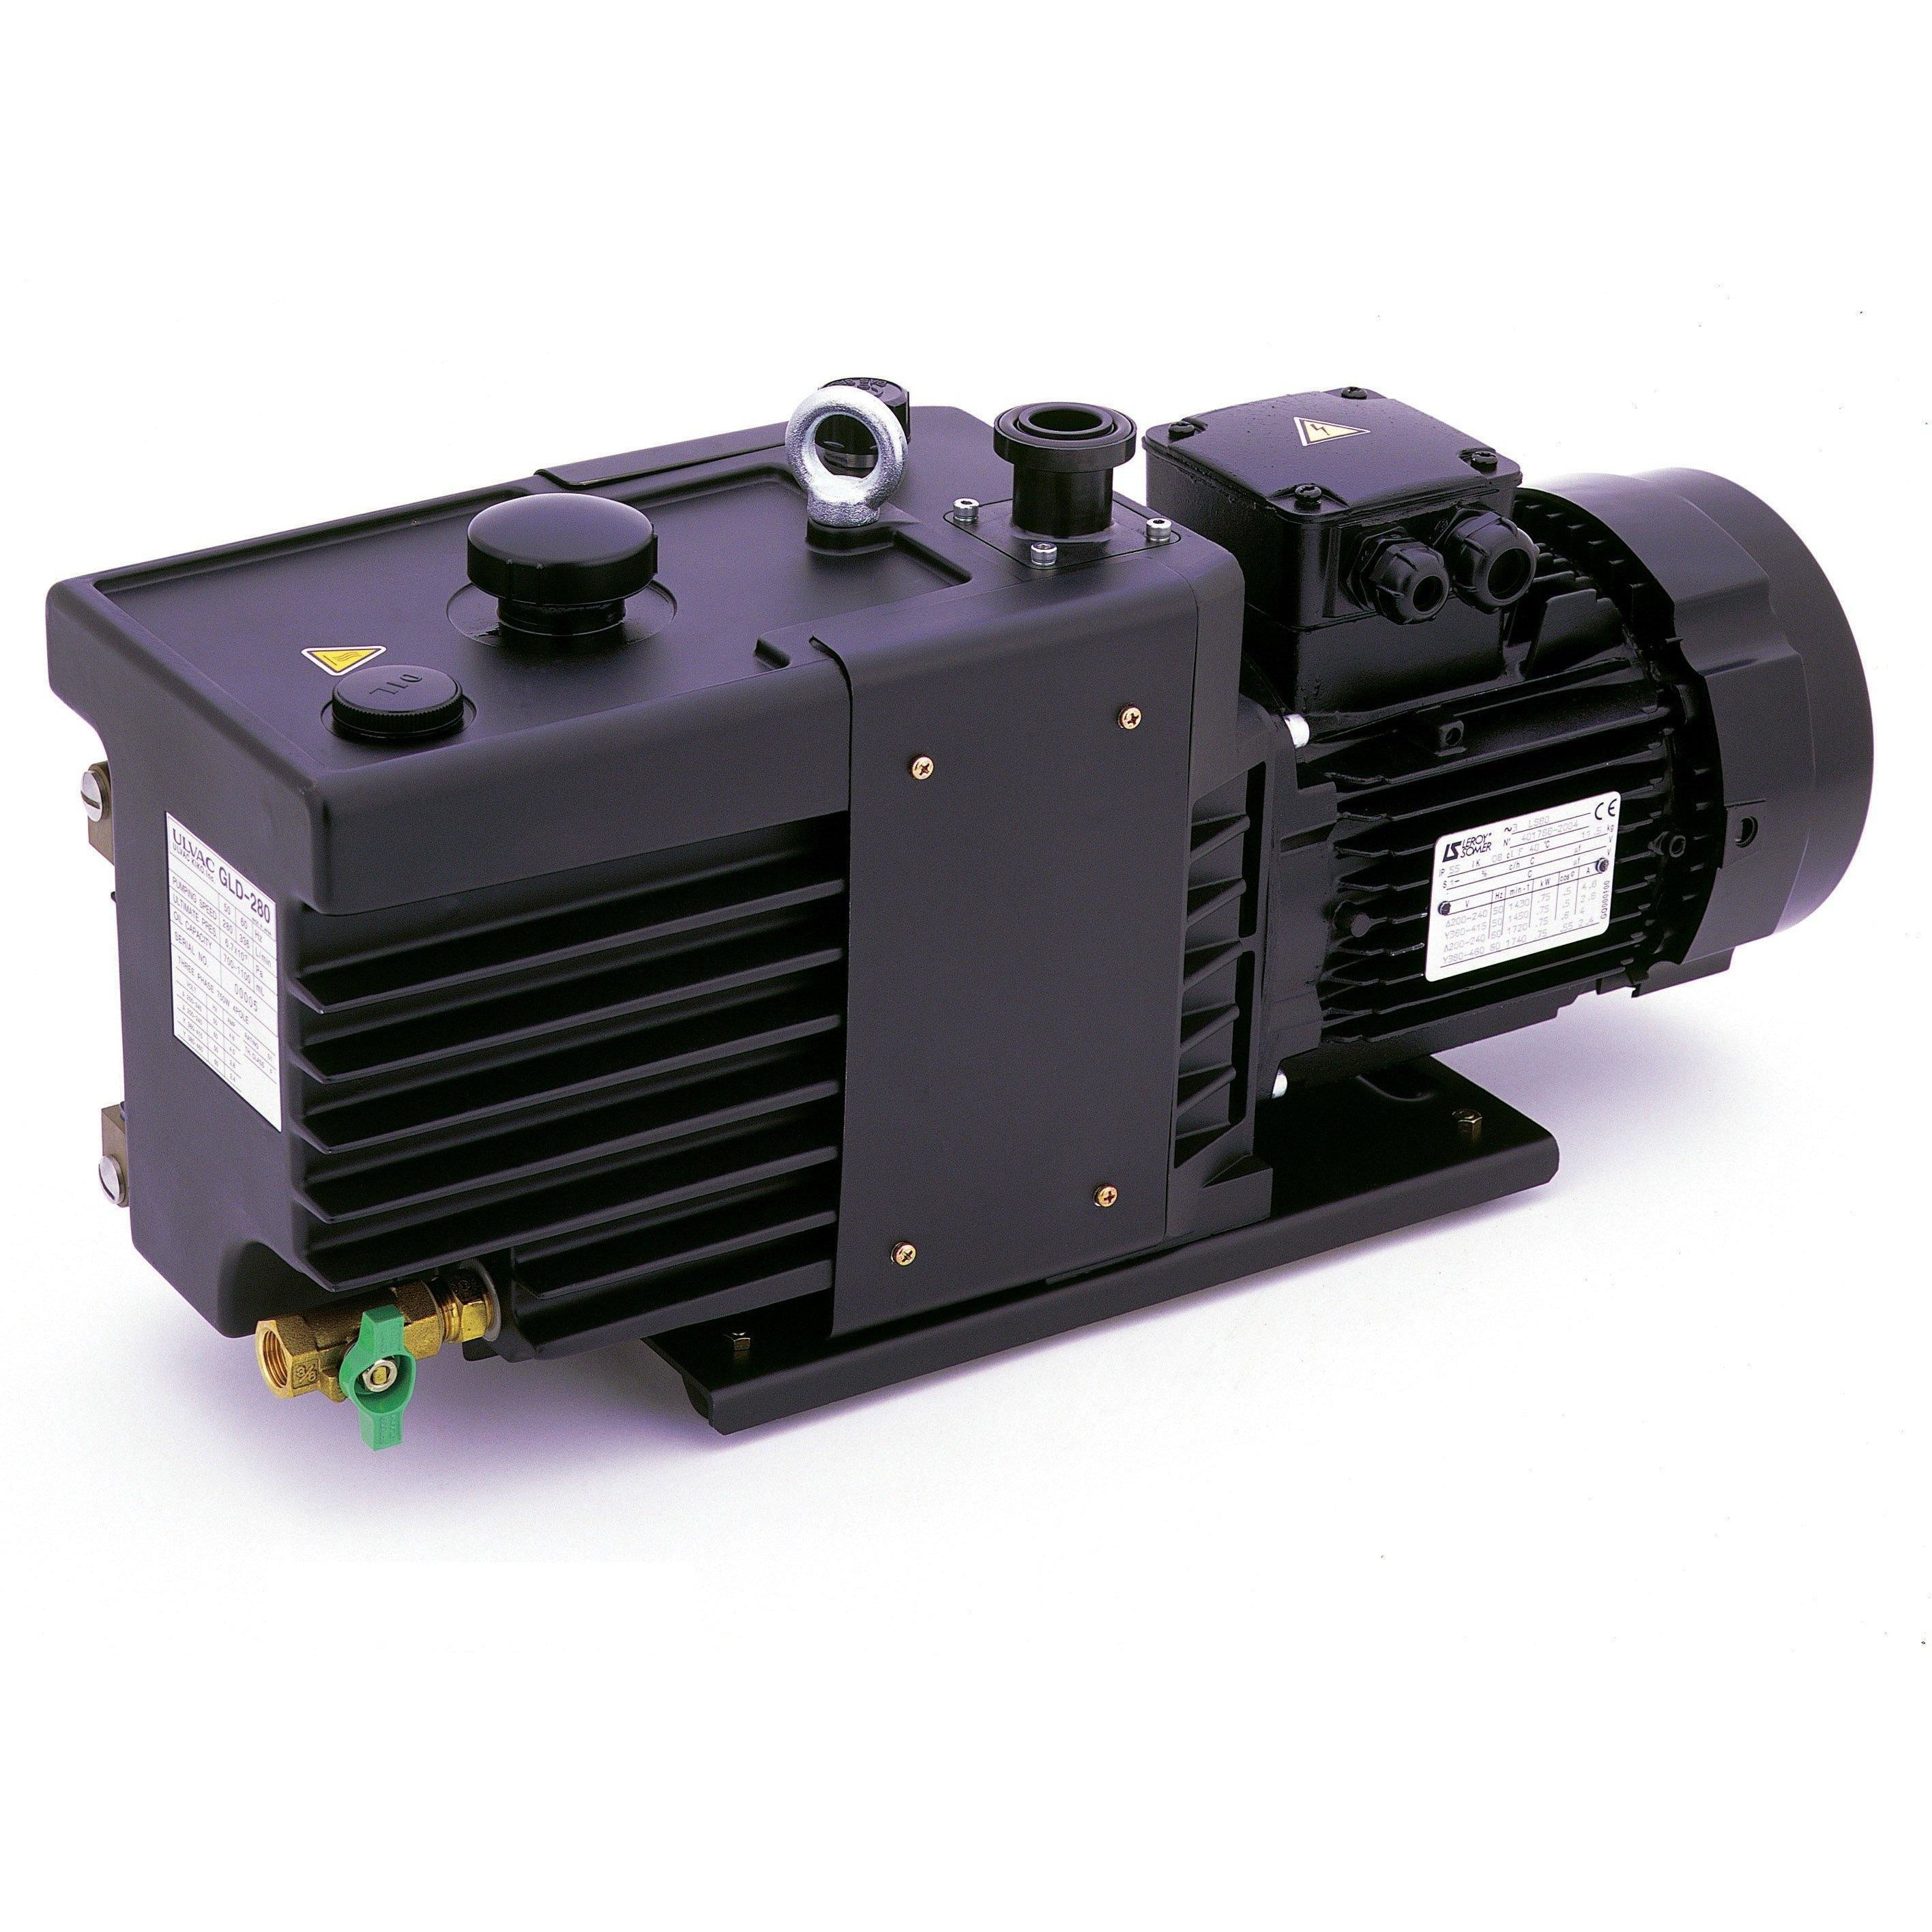 ULVAC GLD-280 Direct Drive Oil-Sealed Rotary Vacuum Pump New Products ULVAC